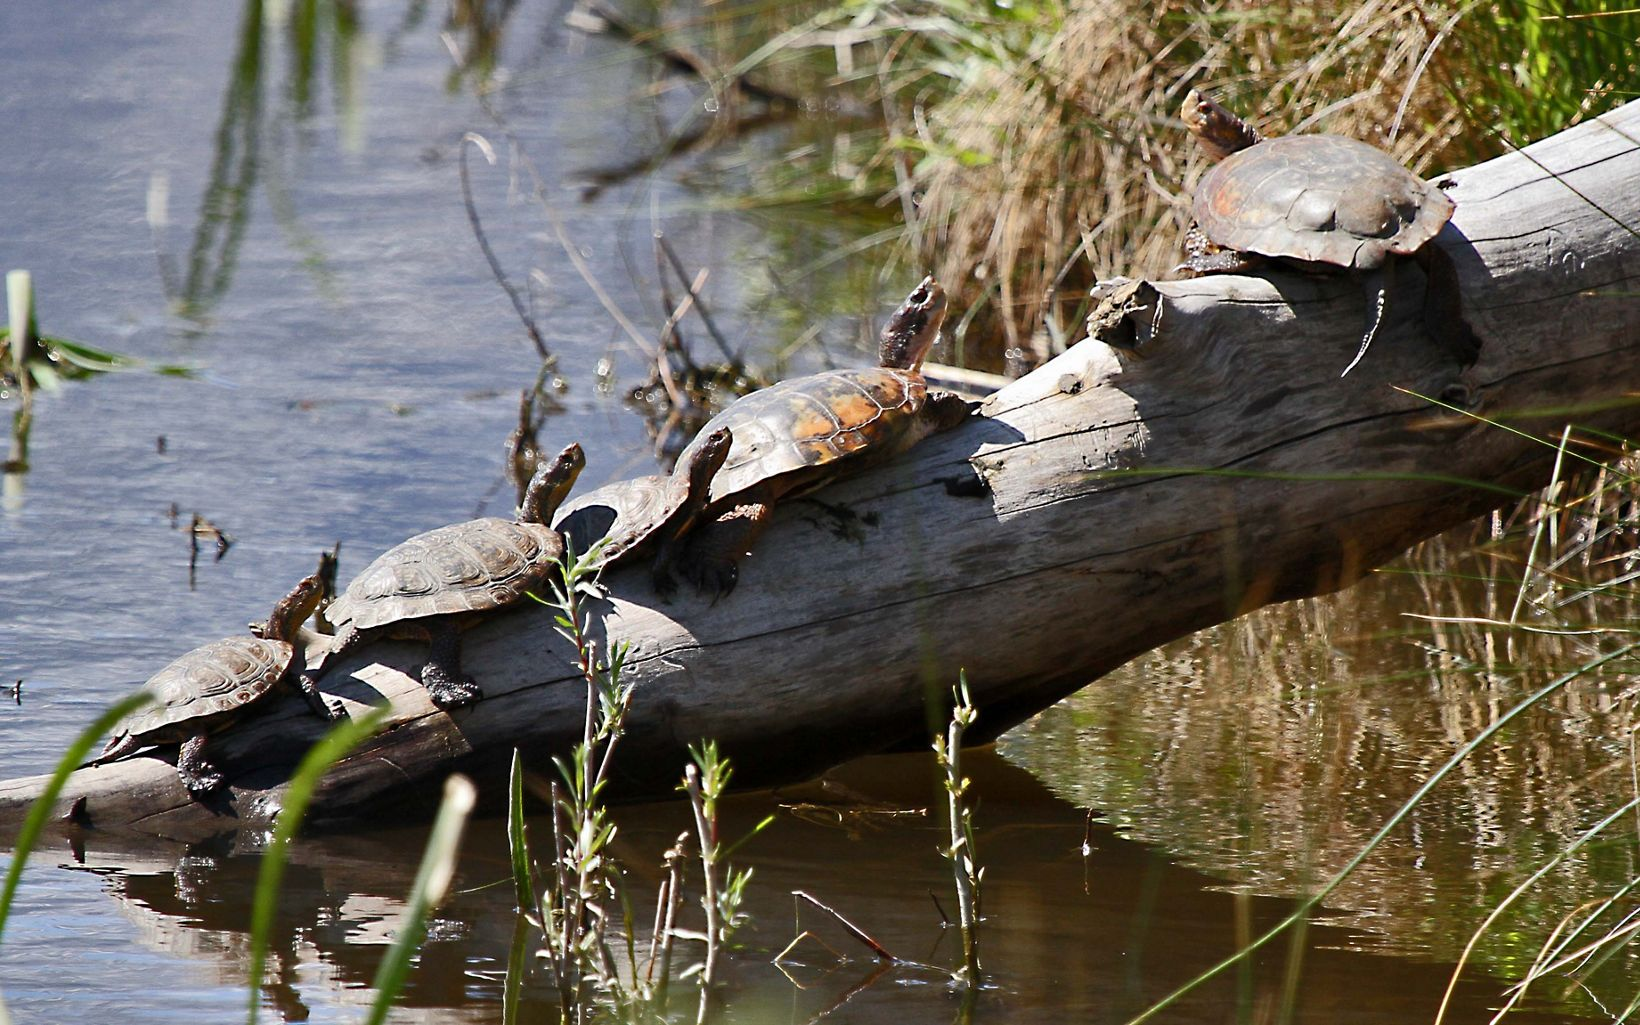 The Western Pond Turtle lives in northwest Nevada in perennial water bodies, which are fed by groundwater, like the Truckee and Carson Rivers or nearby ponds.